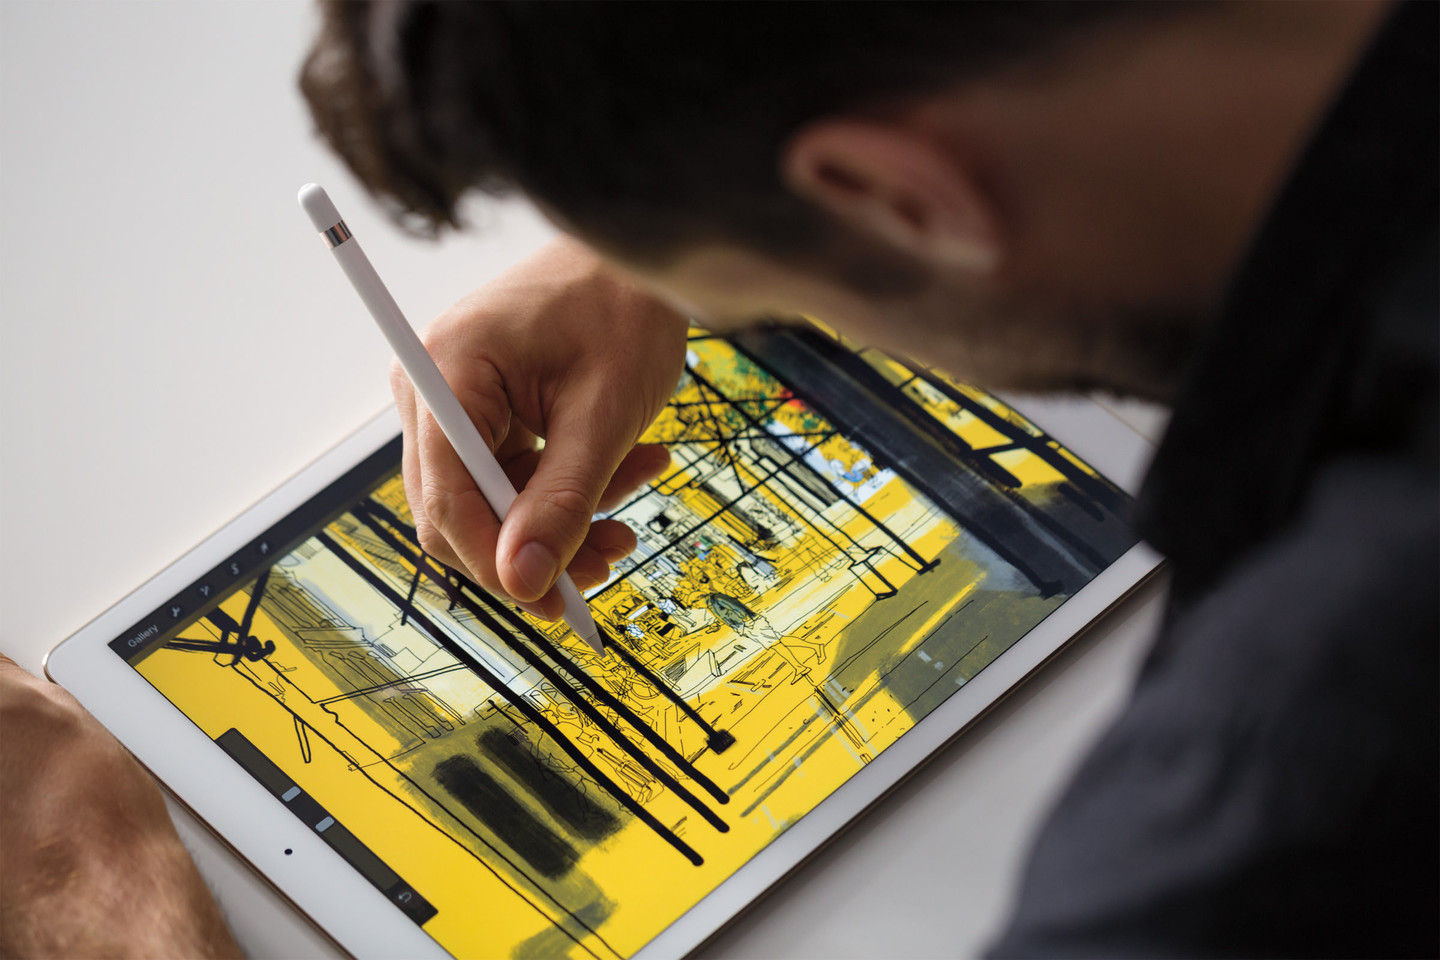 Grab a Certified Refurbished iPad Pro Starting at $399 on Amazon